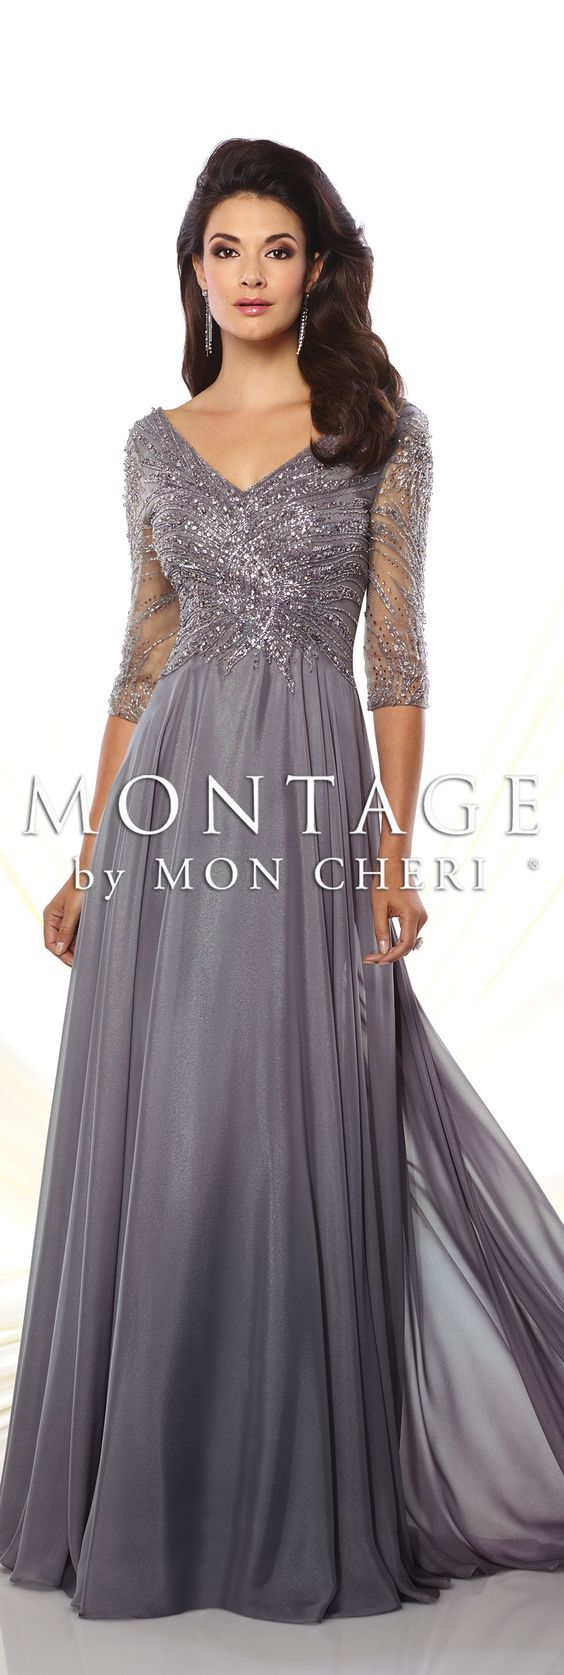 Montage By Mon Cheri Spring 2016 Style No 116950 Eveninggowns